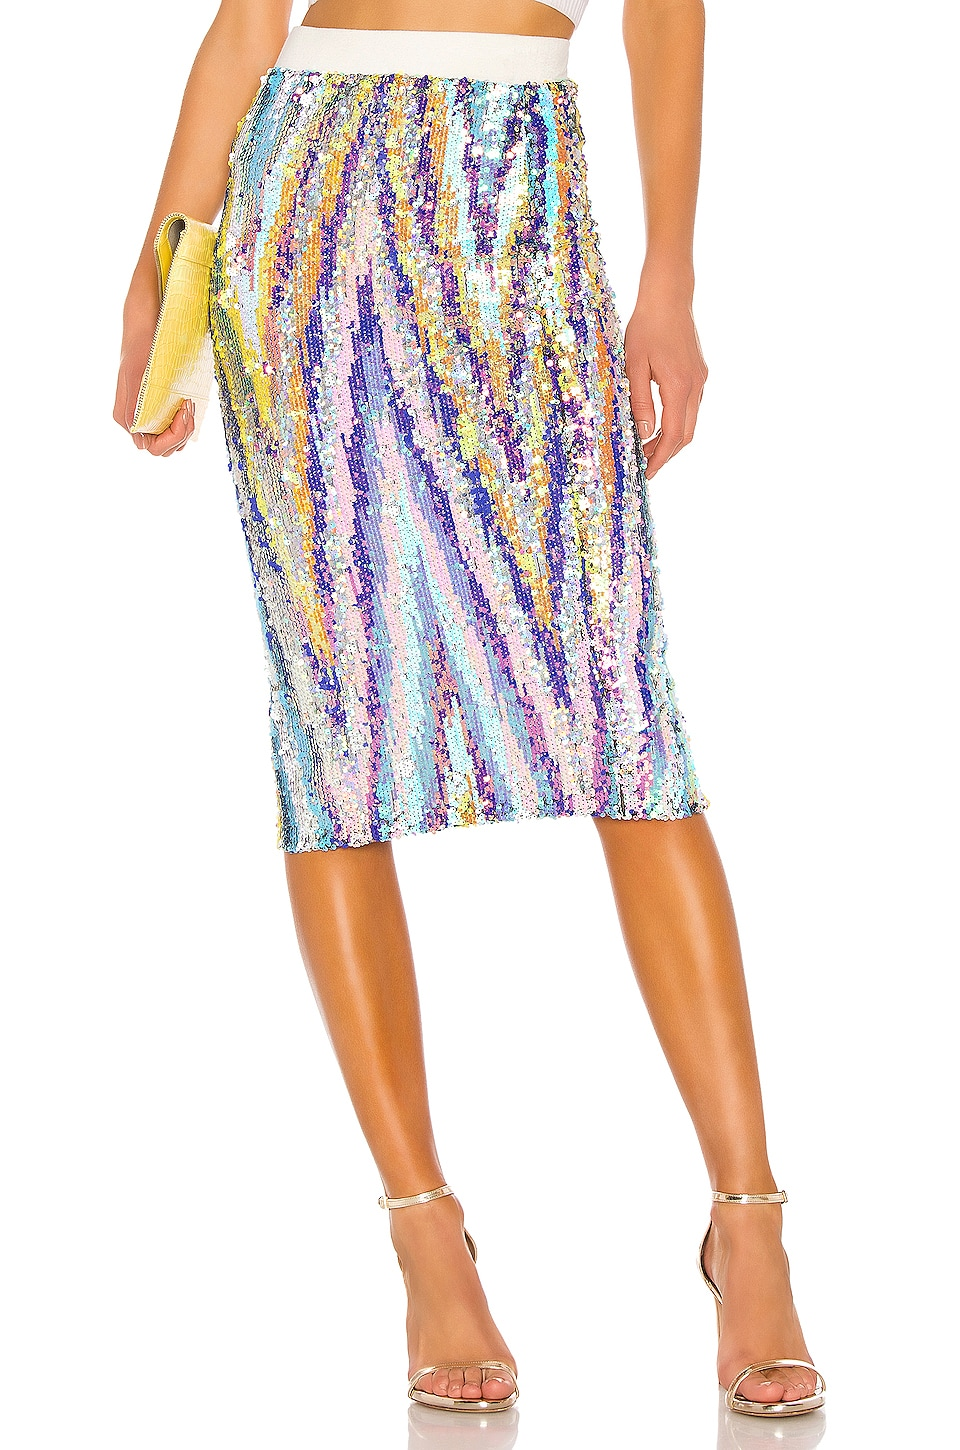 Le Superbe Liza Skirt in Technicolor